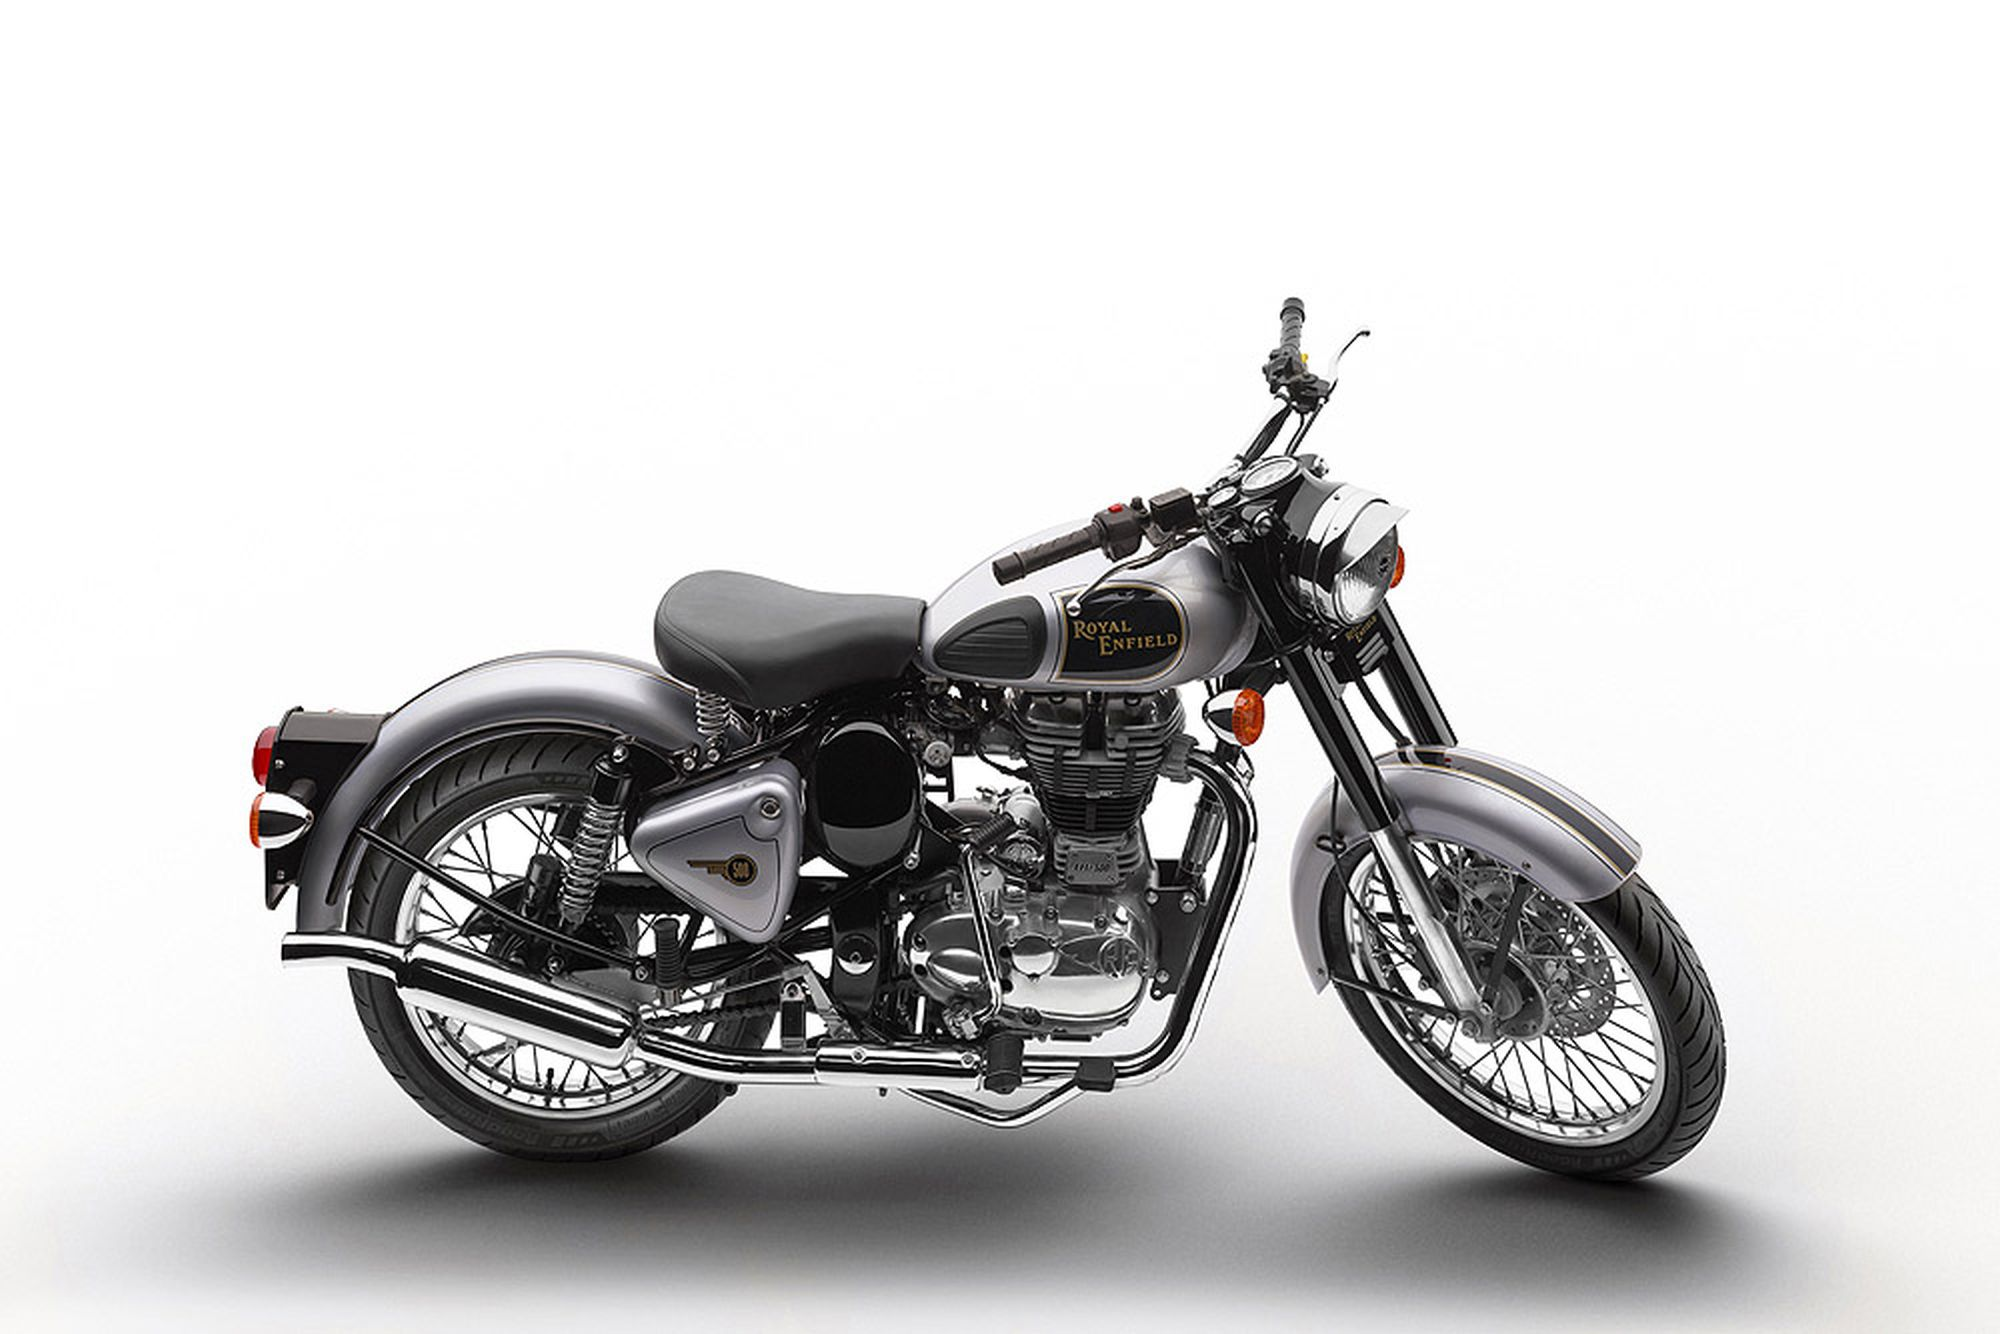 brand personality assessment of royal enfield Brand personality assessment of royal enfield product royal enfield's target customers for nepal are upper middle and upper class segment it faces competition from new brands and provides an opportunity to enjoy.